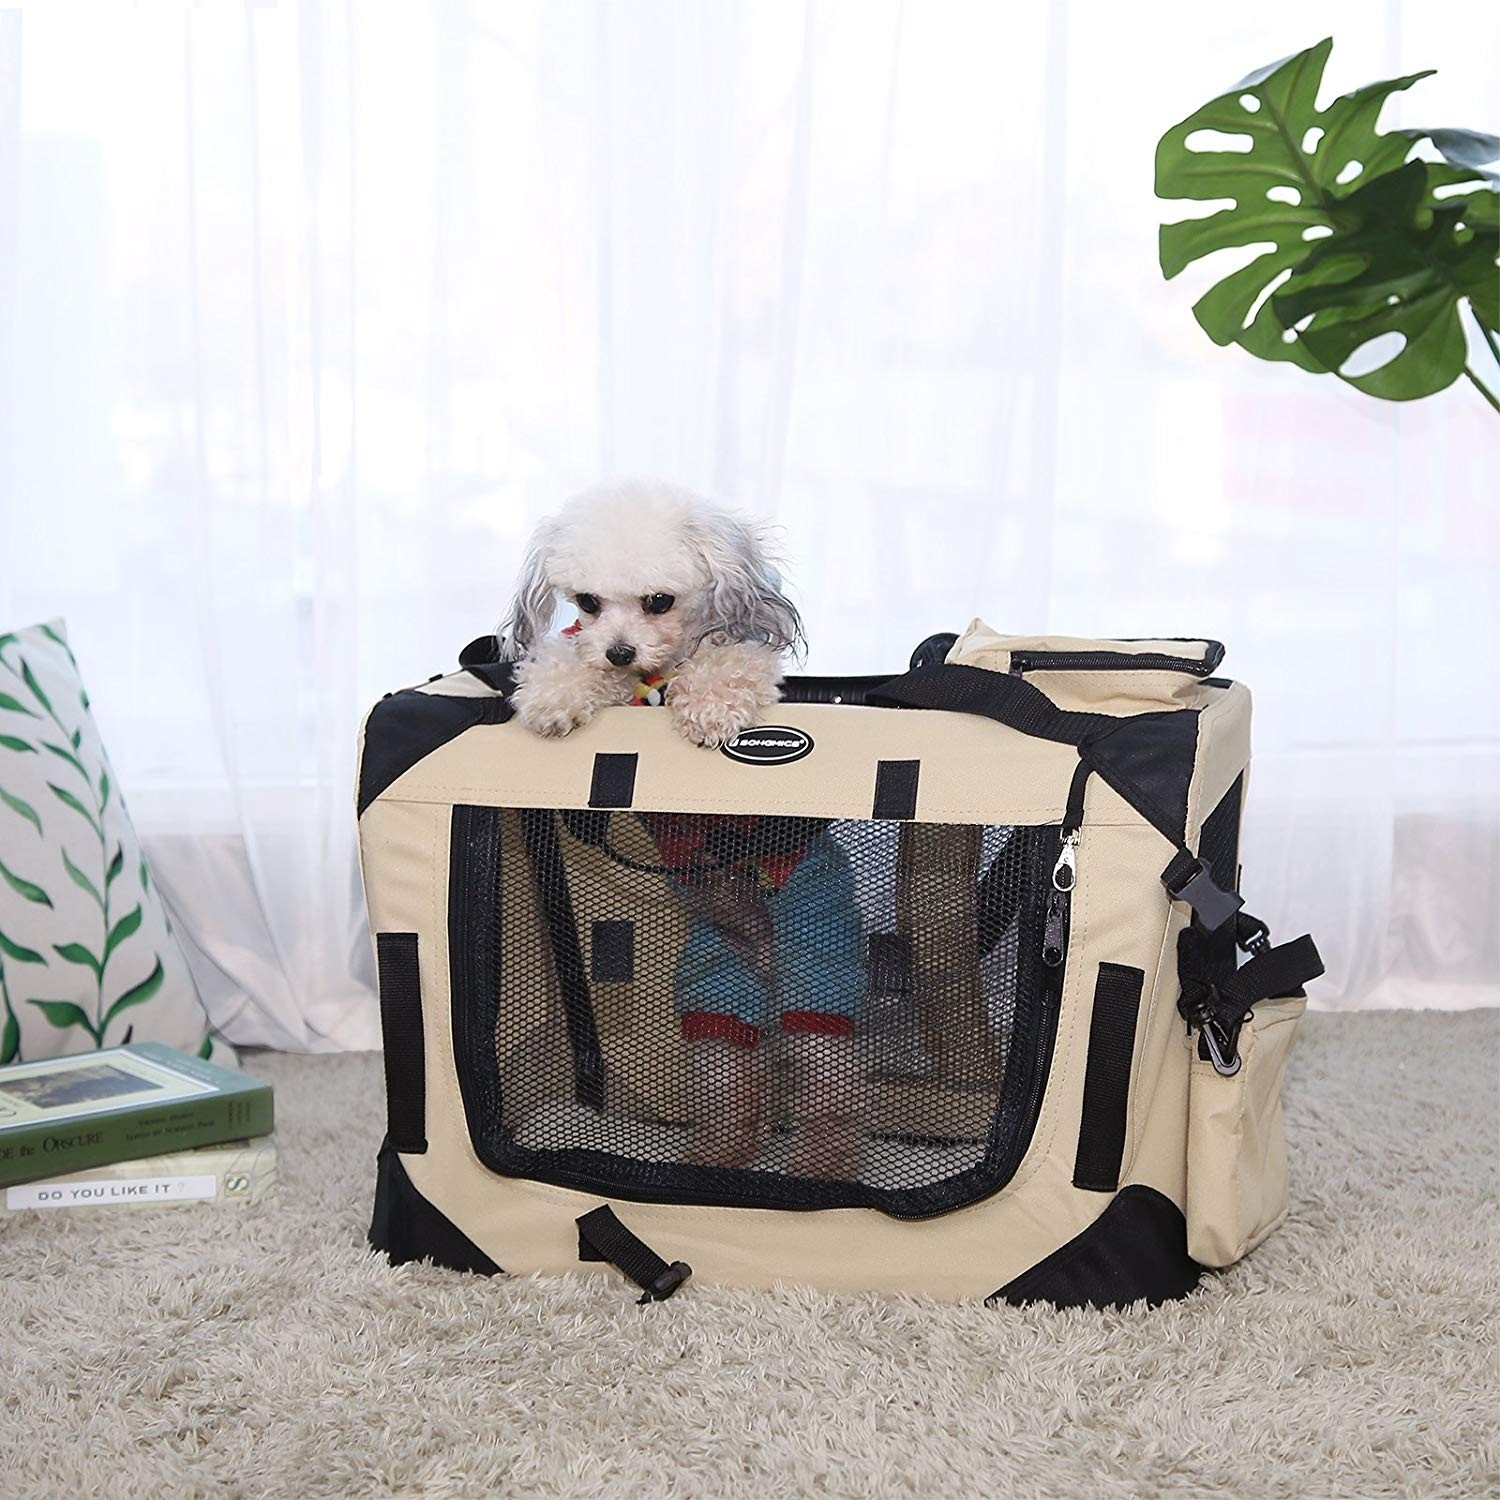 hundetransportbox-yorbay-beige-14